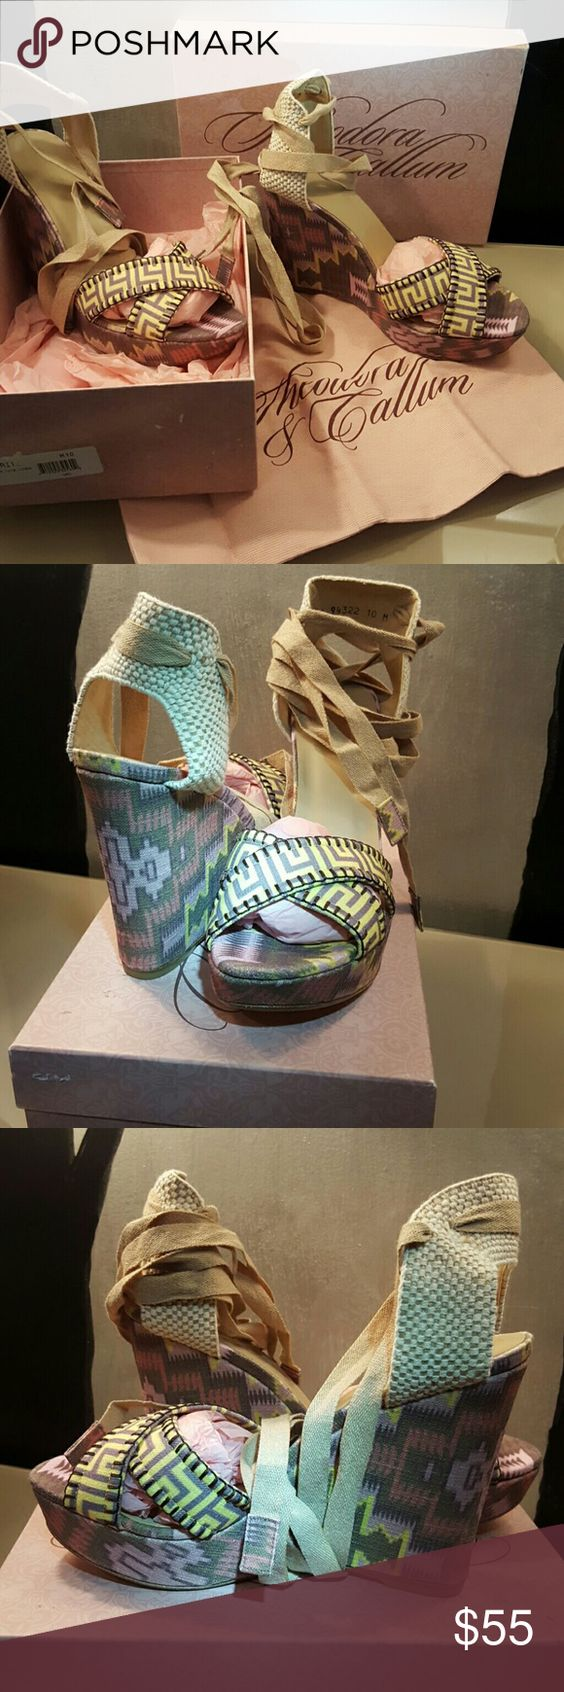 """Theodora Callum platforms These are NWOT including the box and dust bag. Never worn! 5"""" at back 1"""" front platform. theodora callum  Shoes Platforms"""